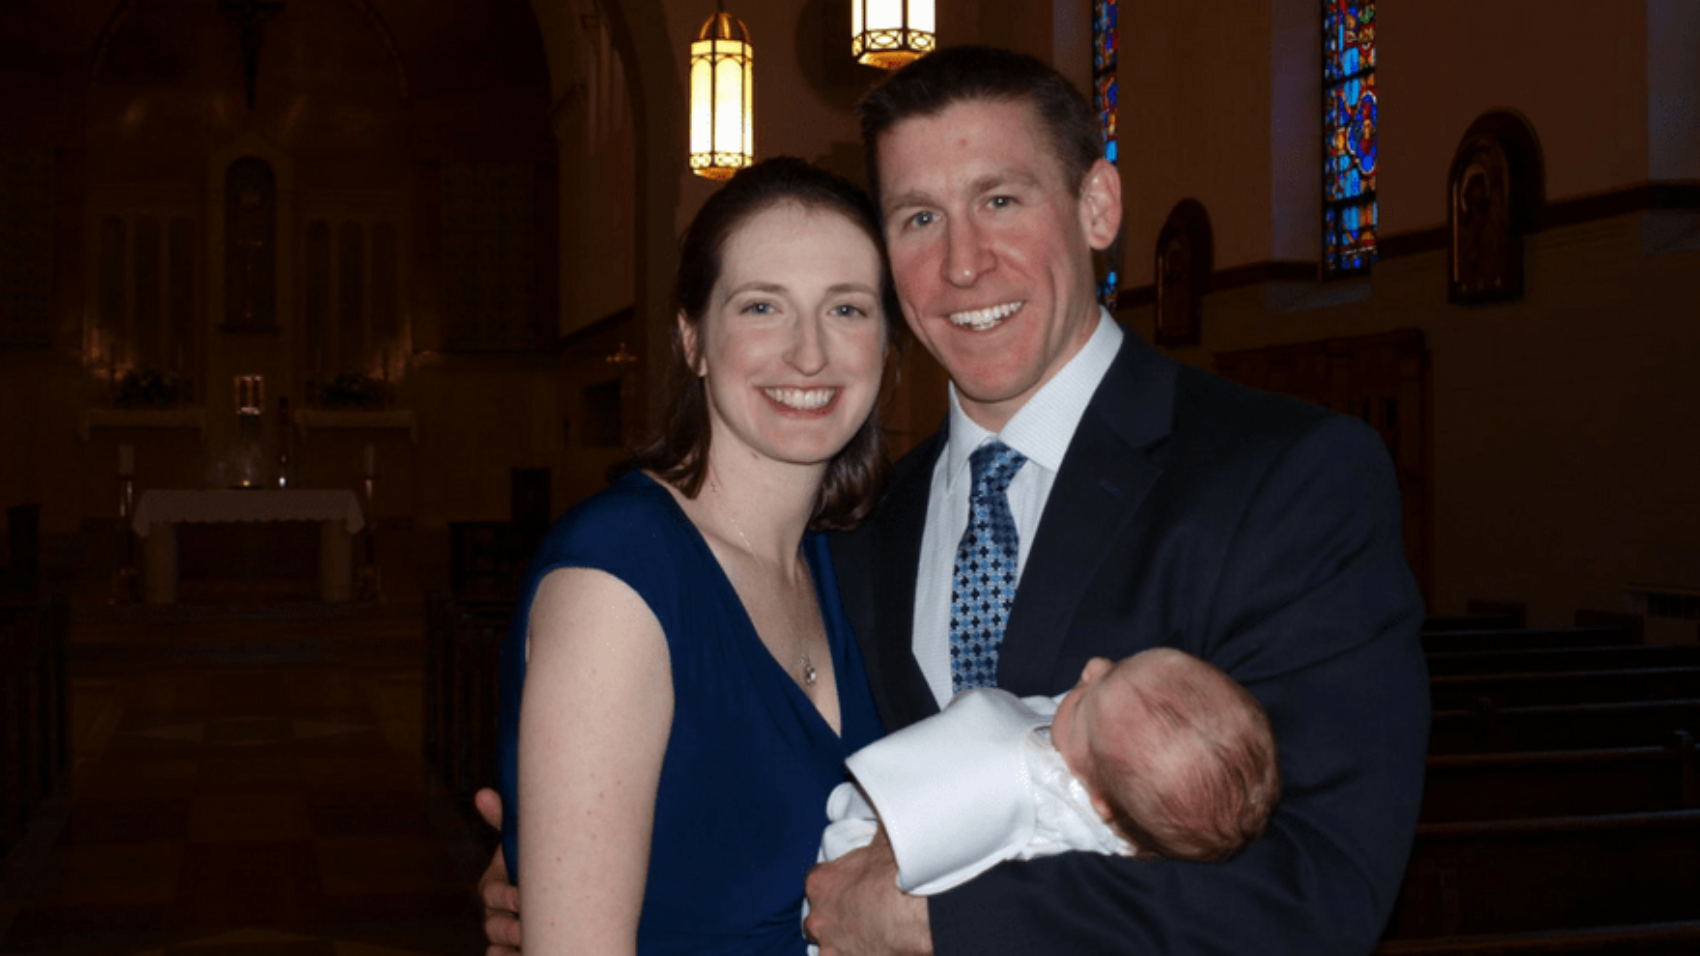 Being An Interfaith Family - My Story After Kids